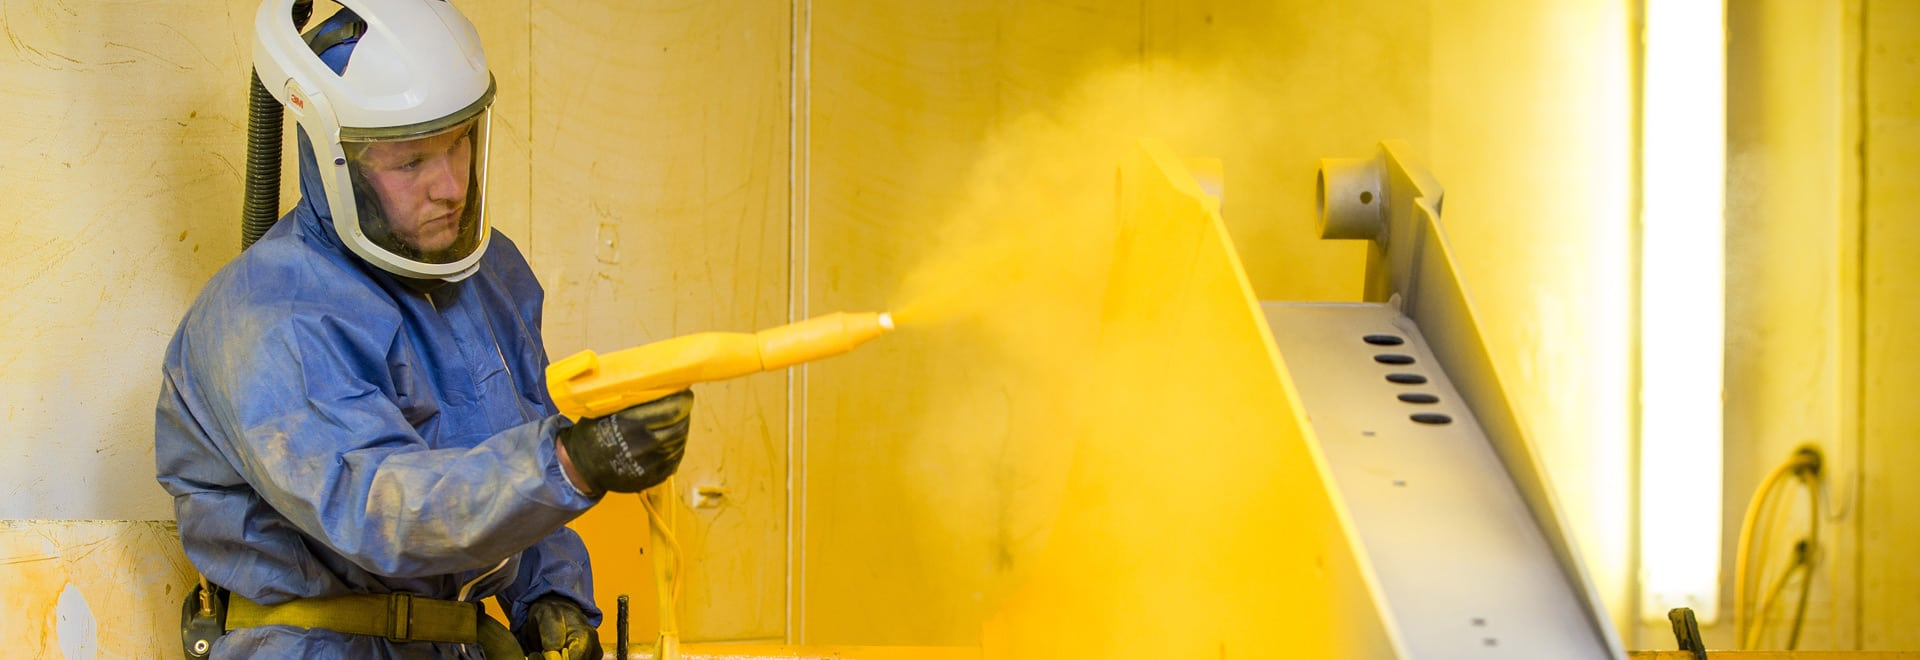 Powder coating spray paint